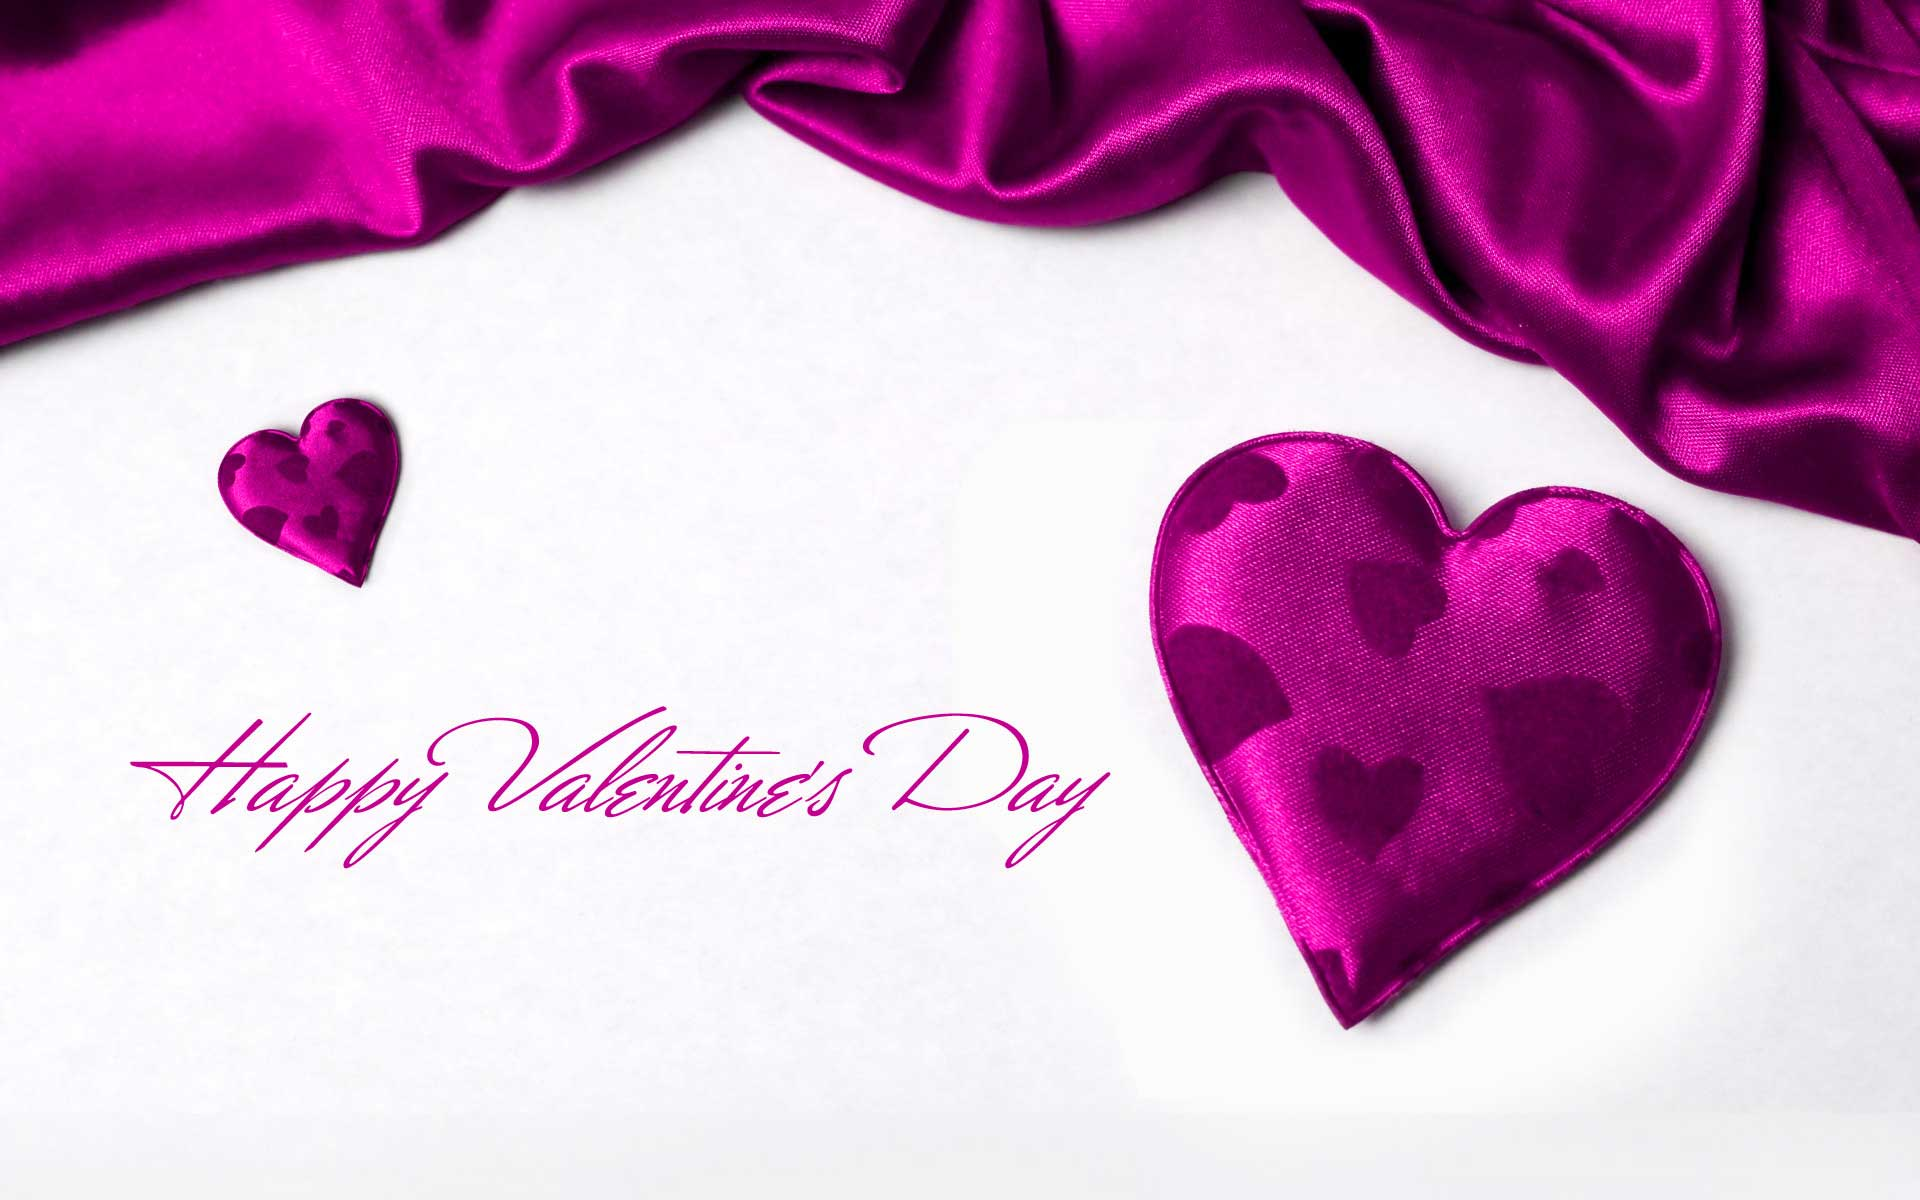 Valentines Day Image 2020 Quotes and HD Wallpapers